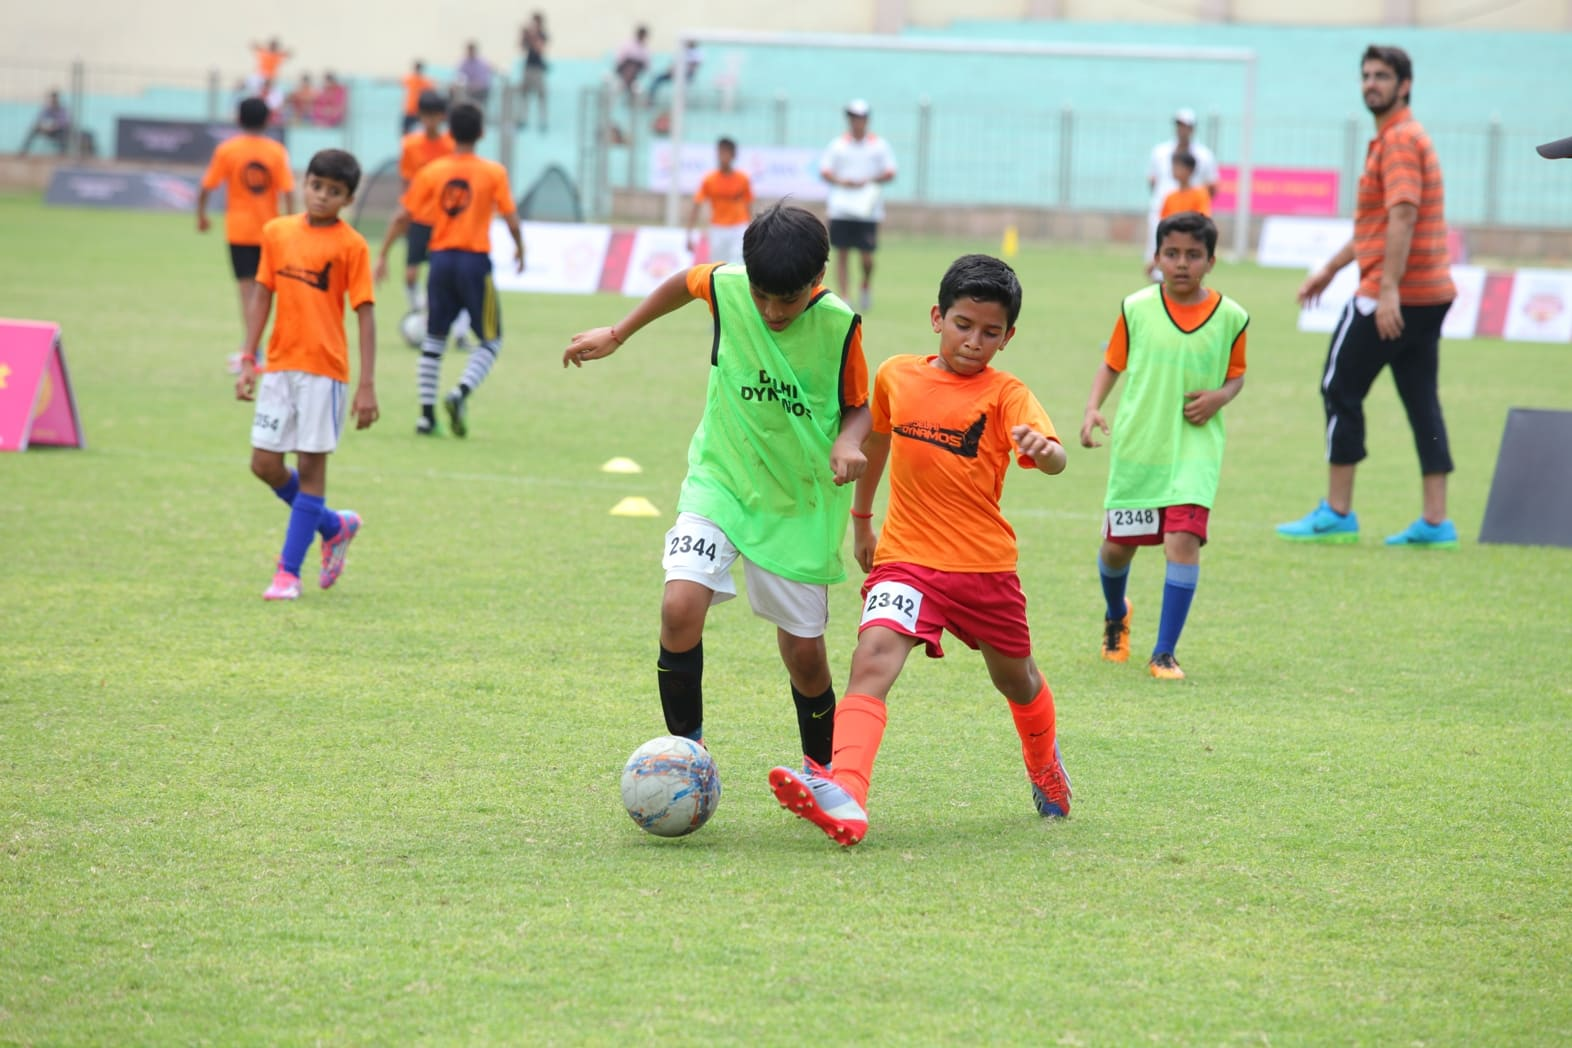 Image result for Indian school children playing sports